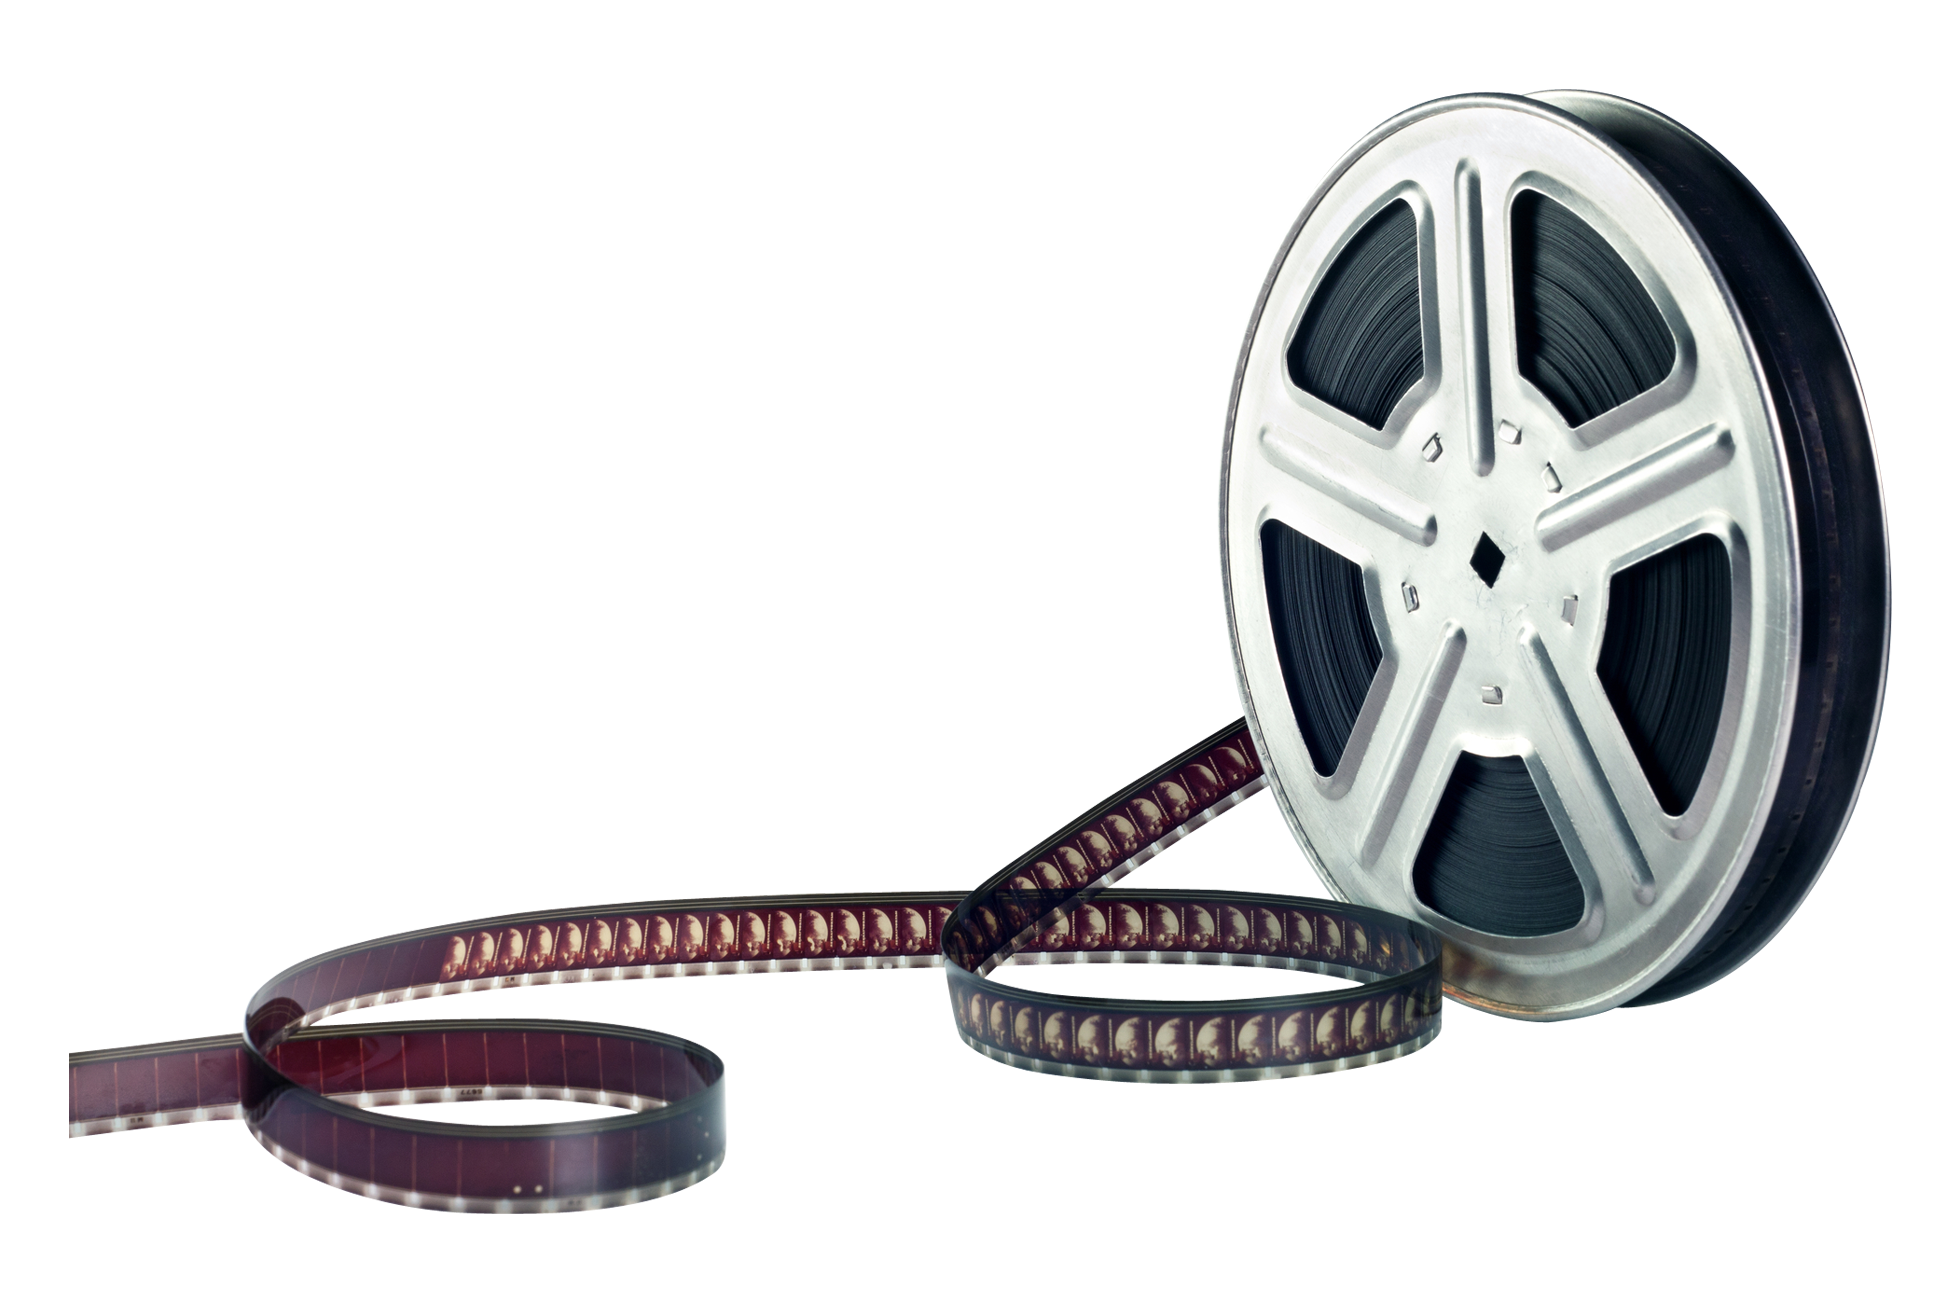 film reel png image purepng transparent png #36133